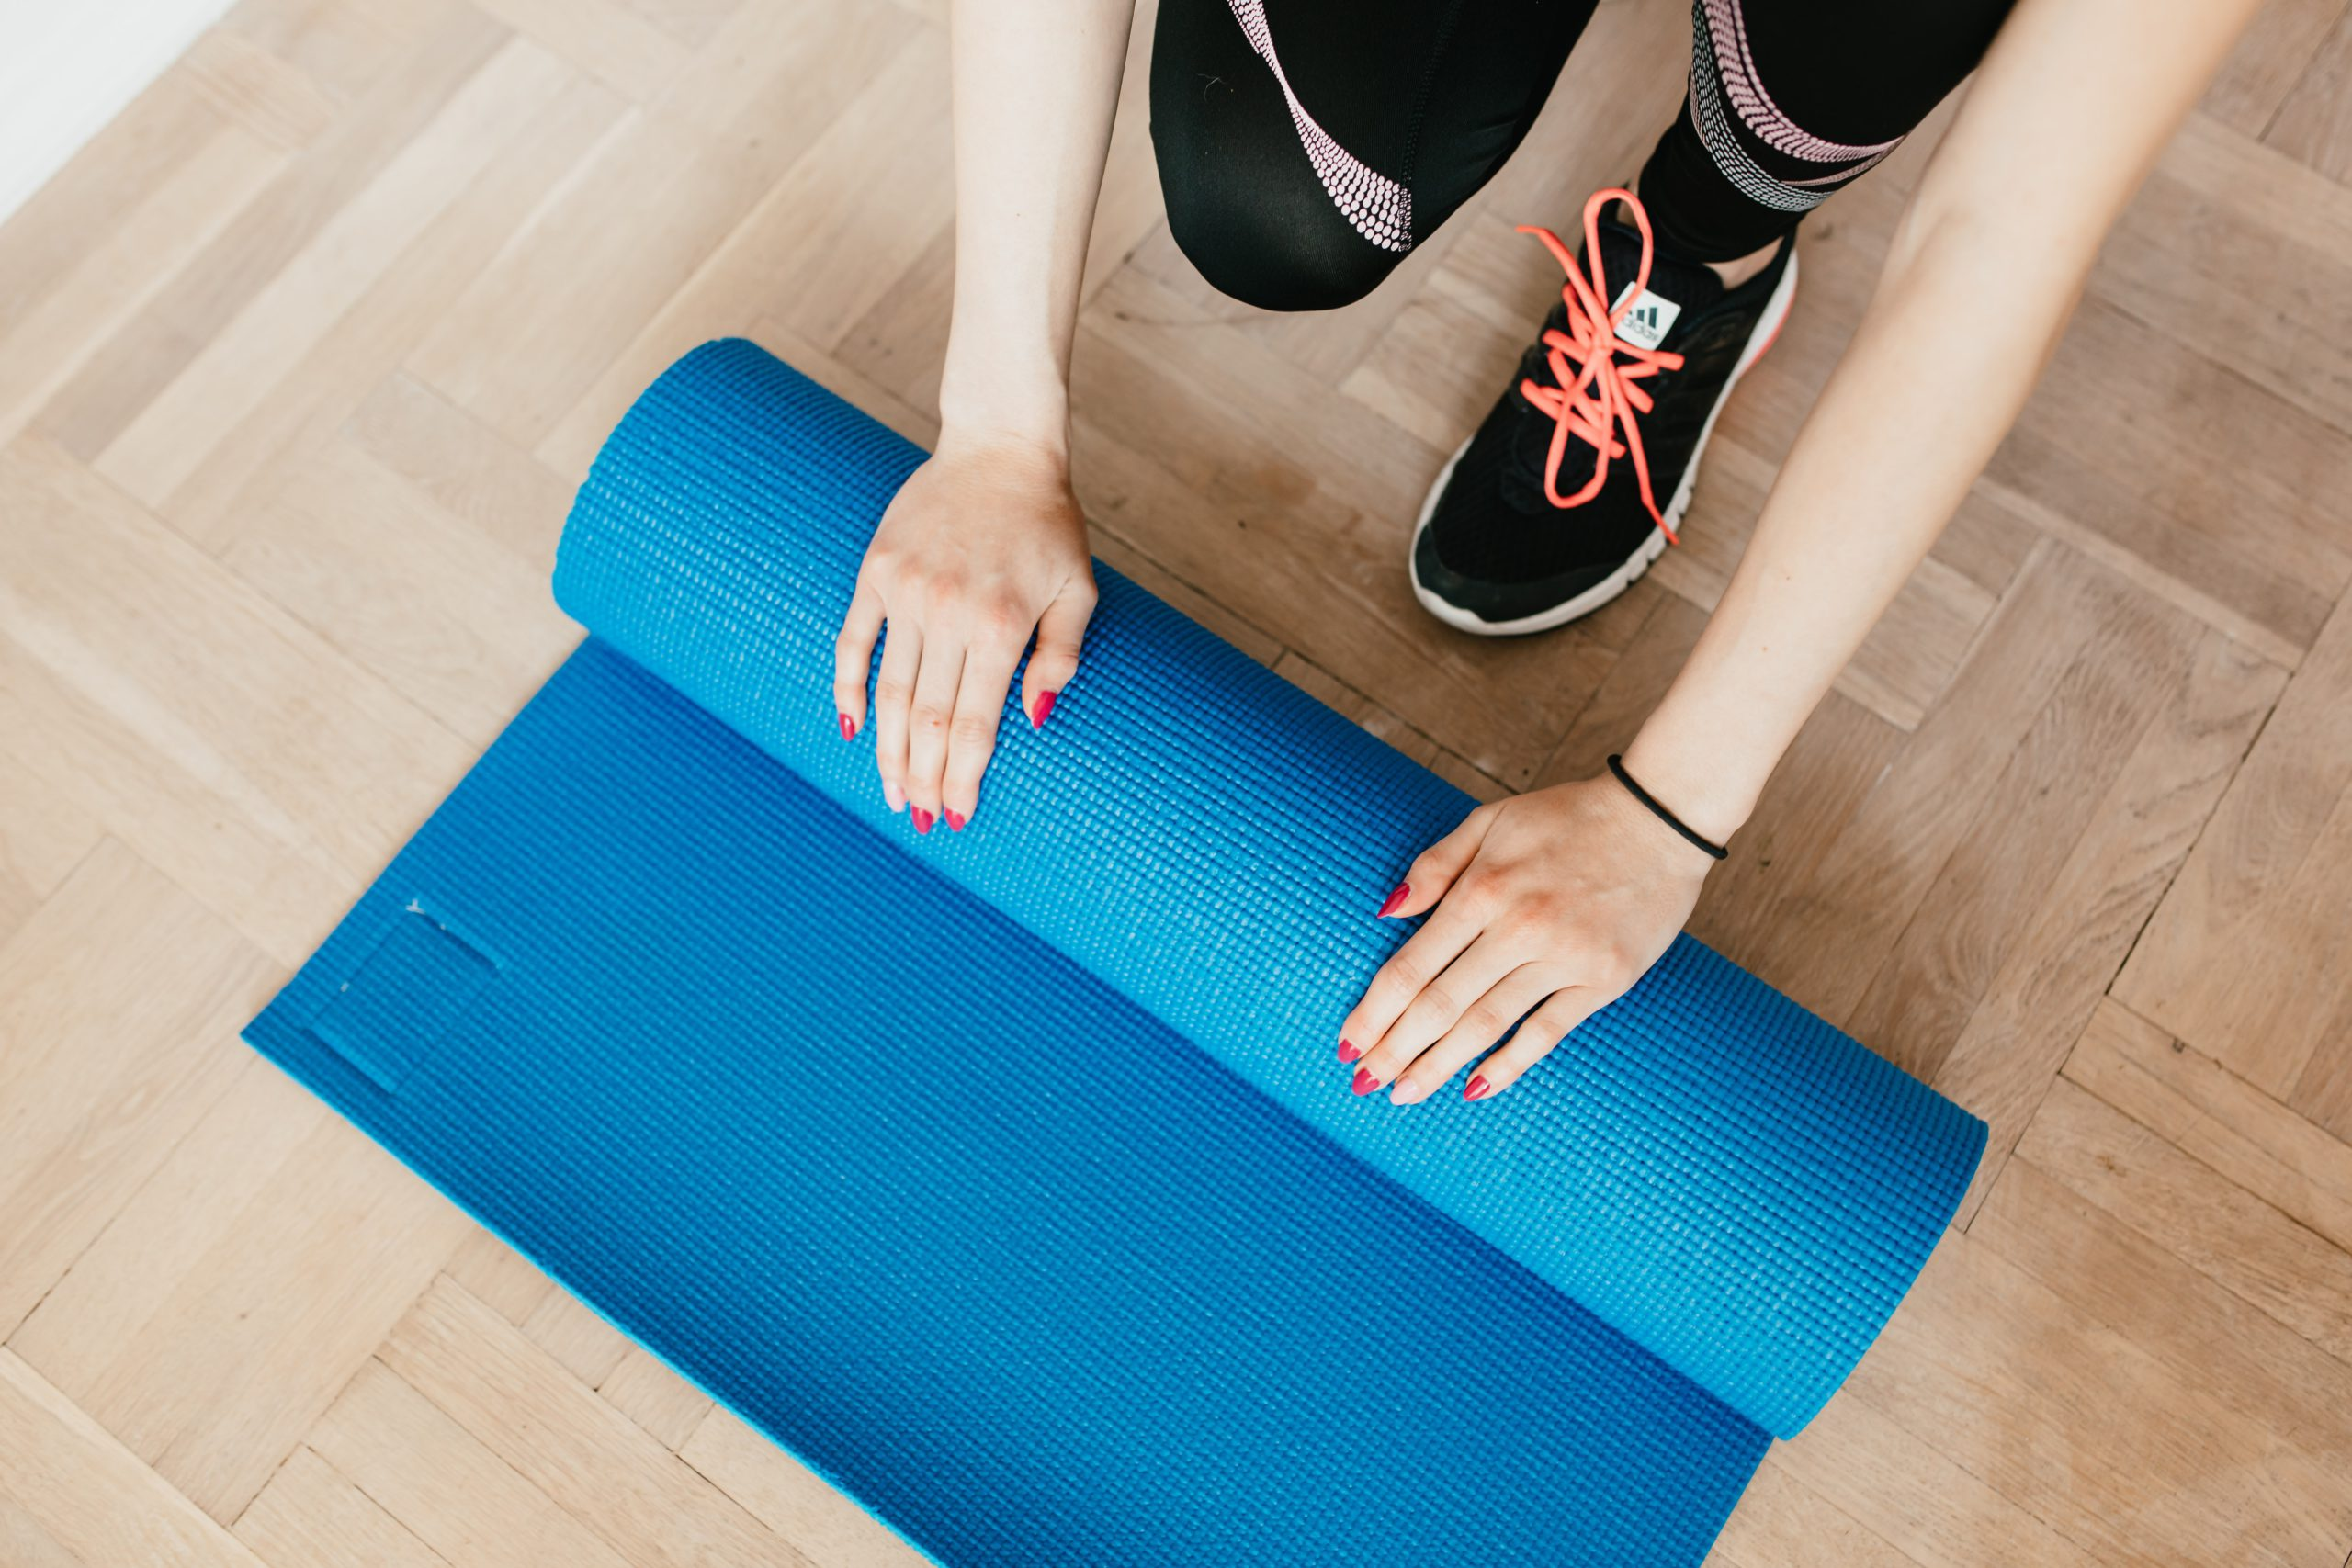 Girl rolling yoga mat